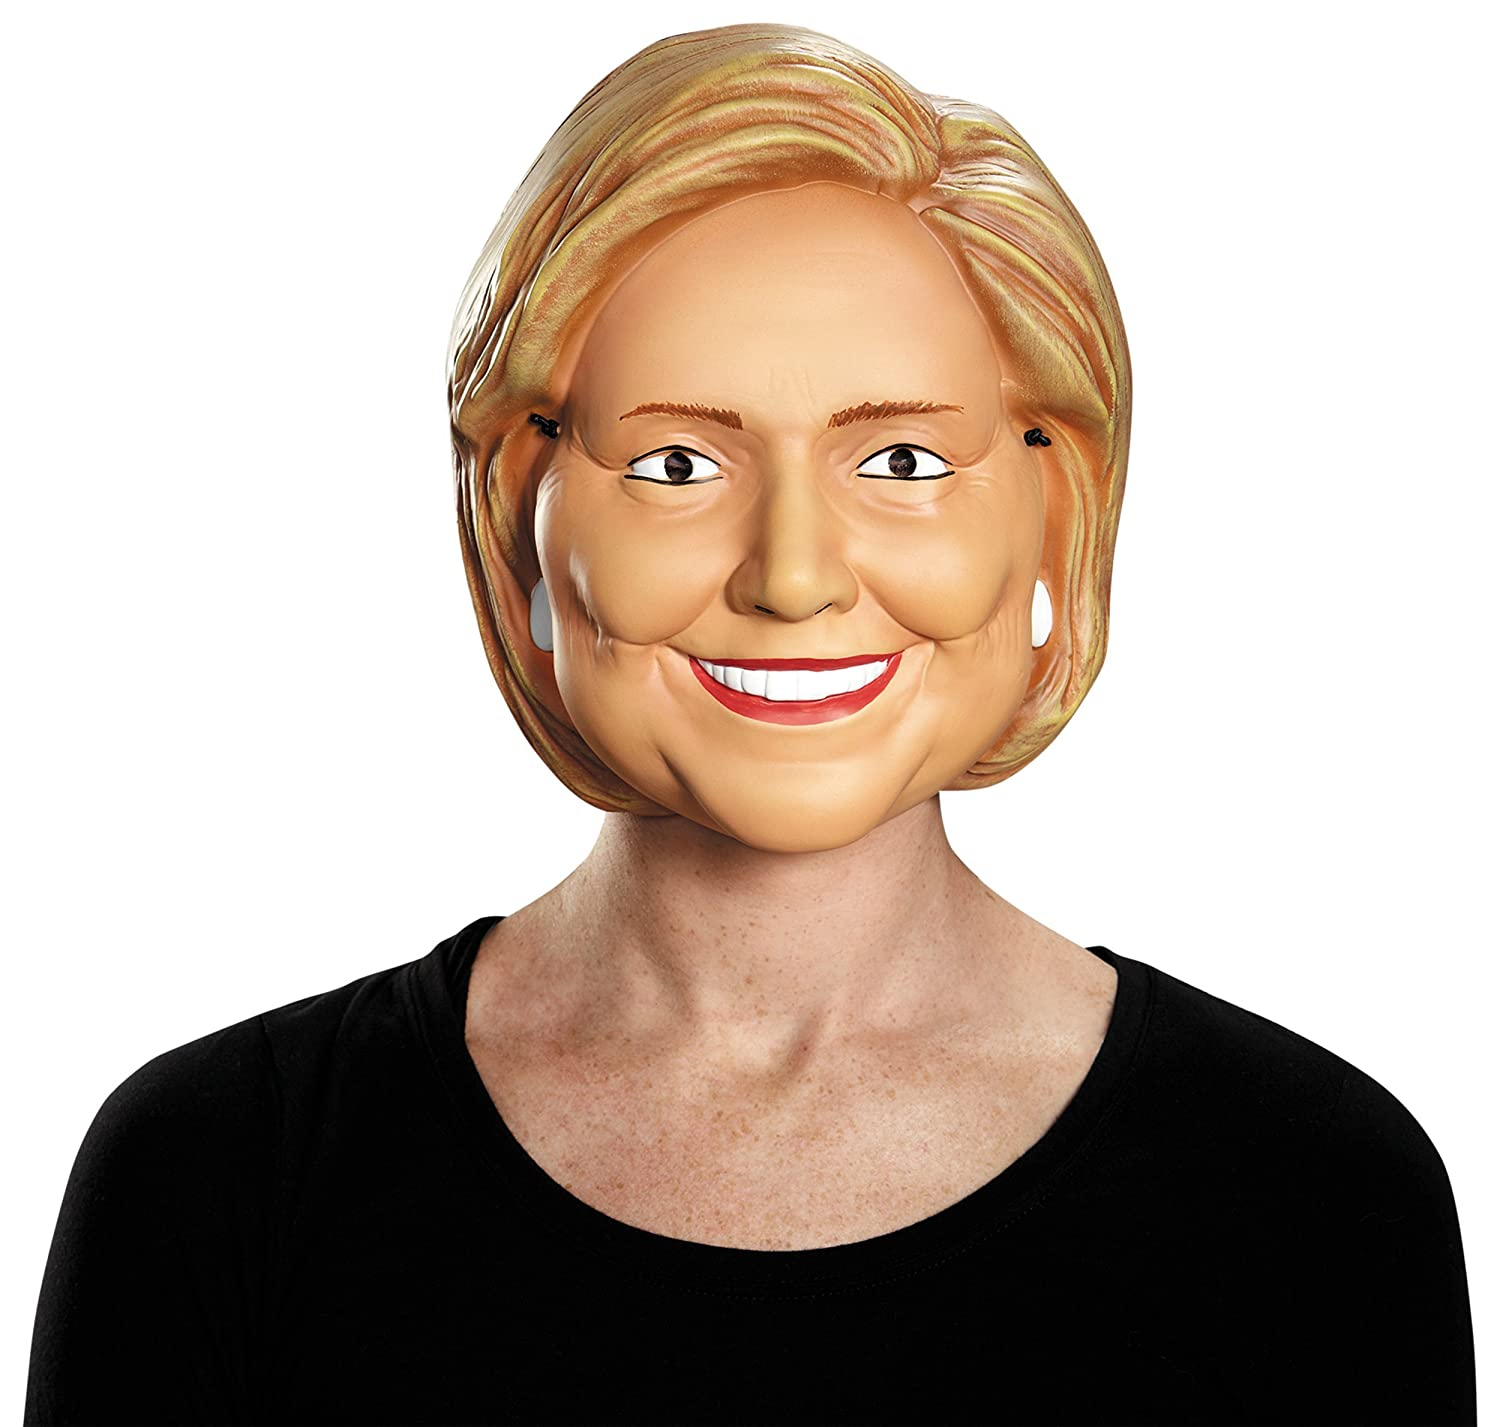 Amazon.com: Disguise Costumes Hillary Clinton Vacuform 1/2 Mask ...